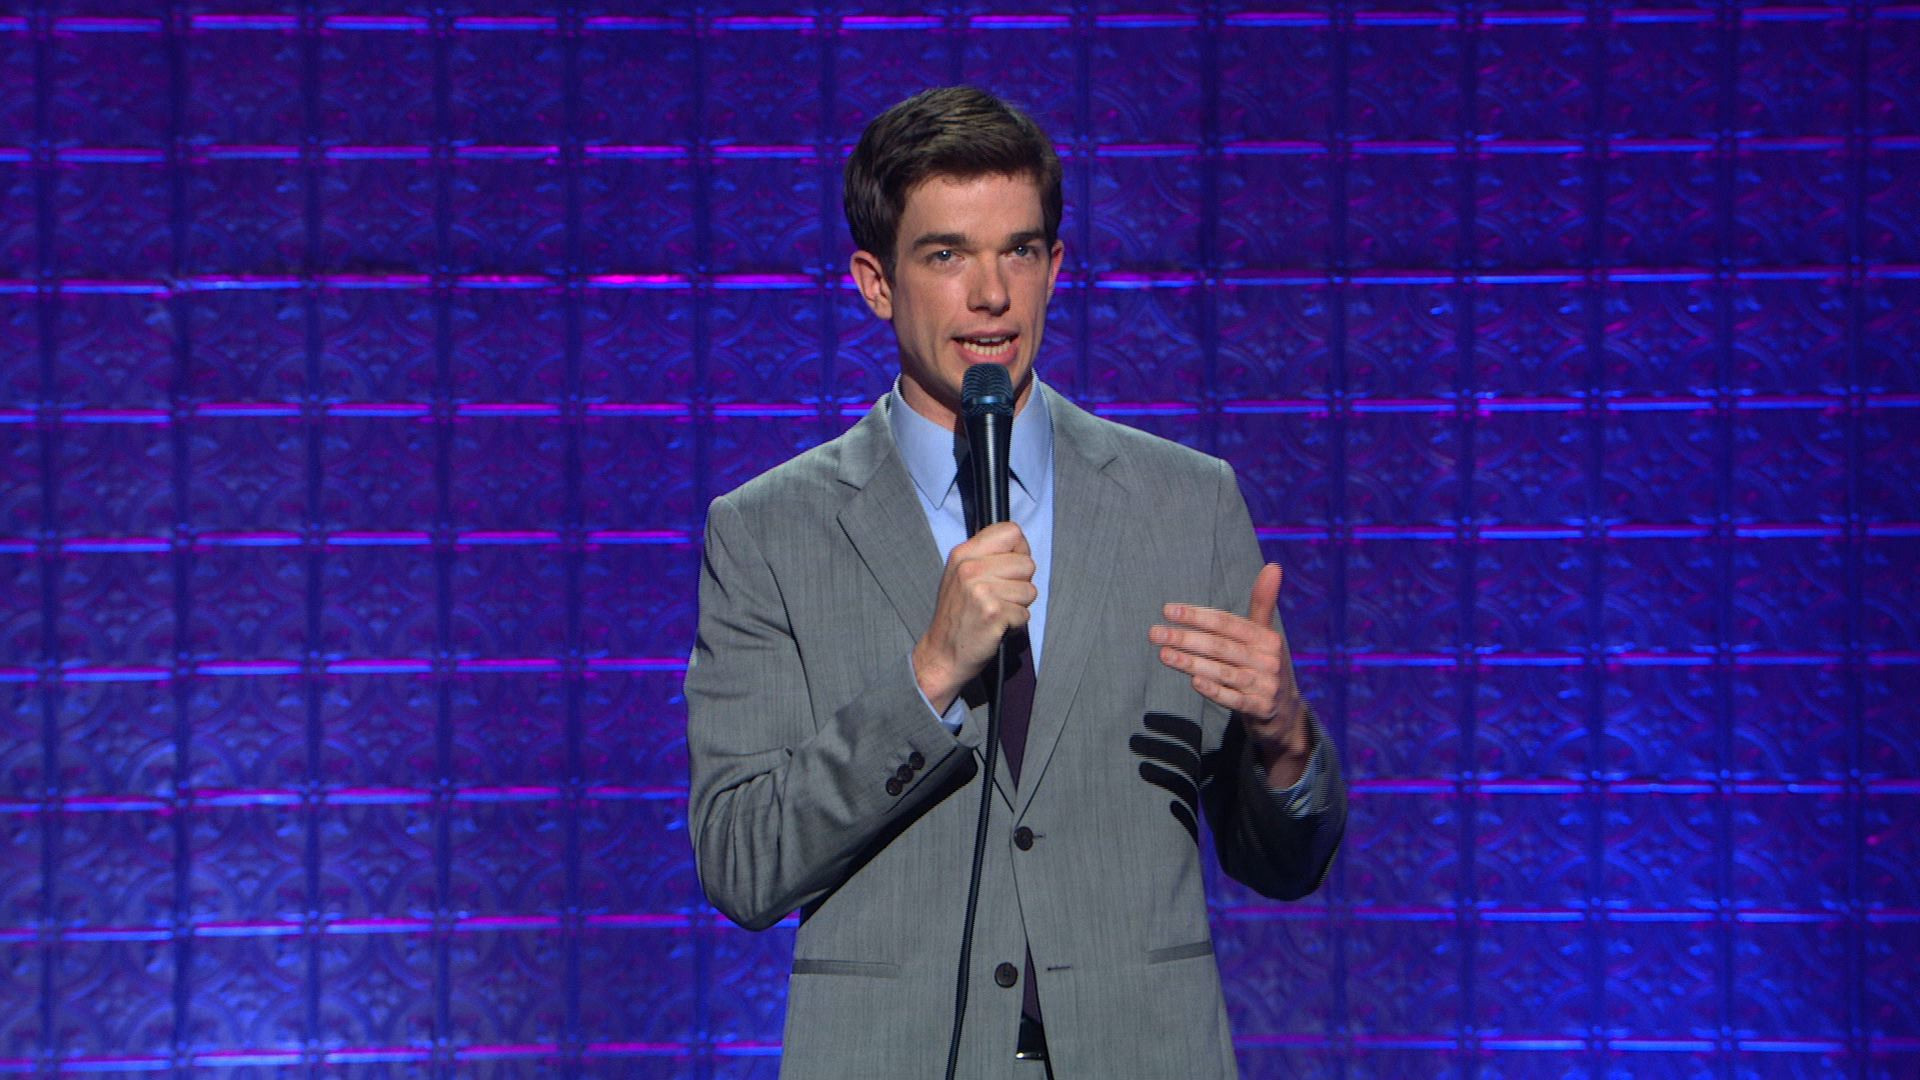 John Mulaney - Female Friends